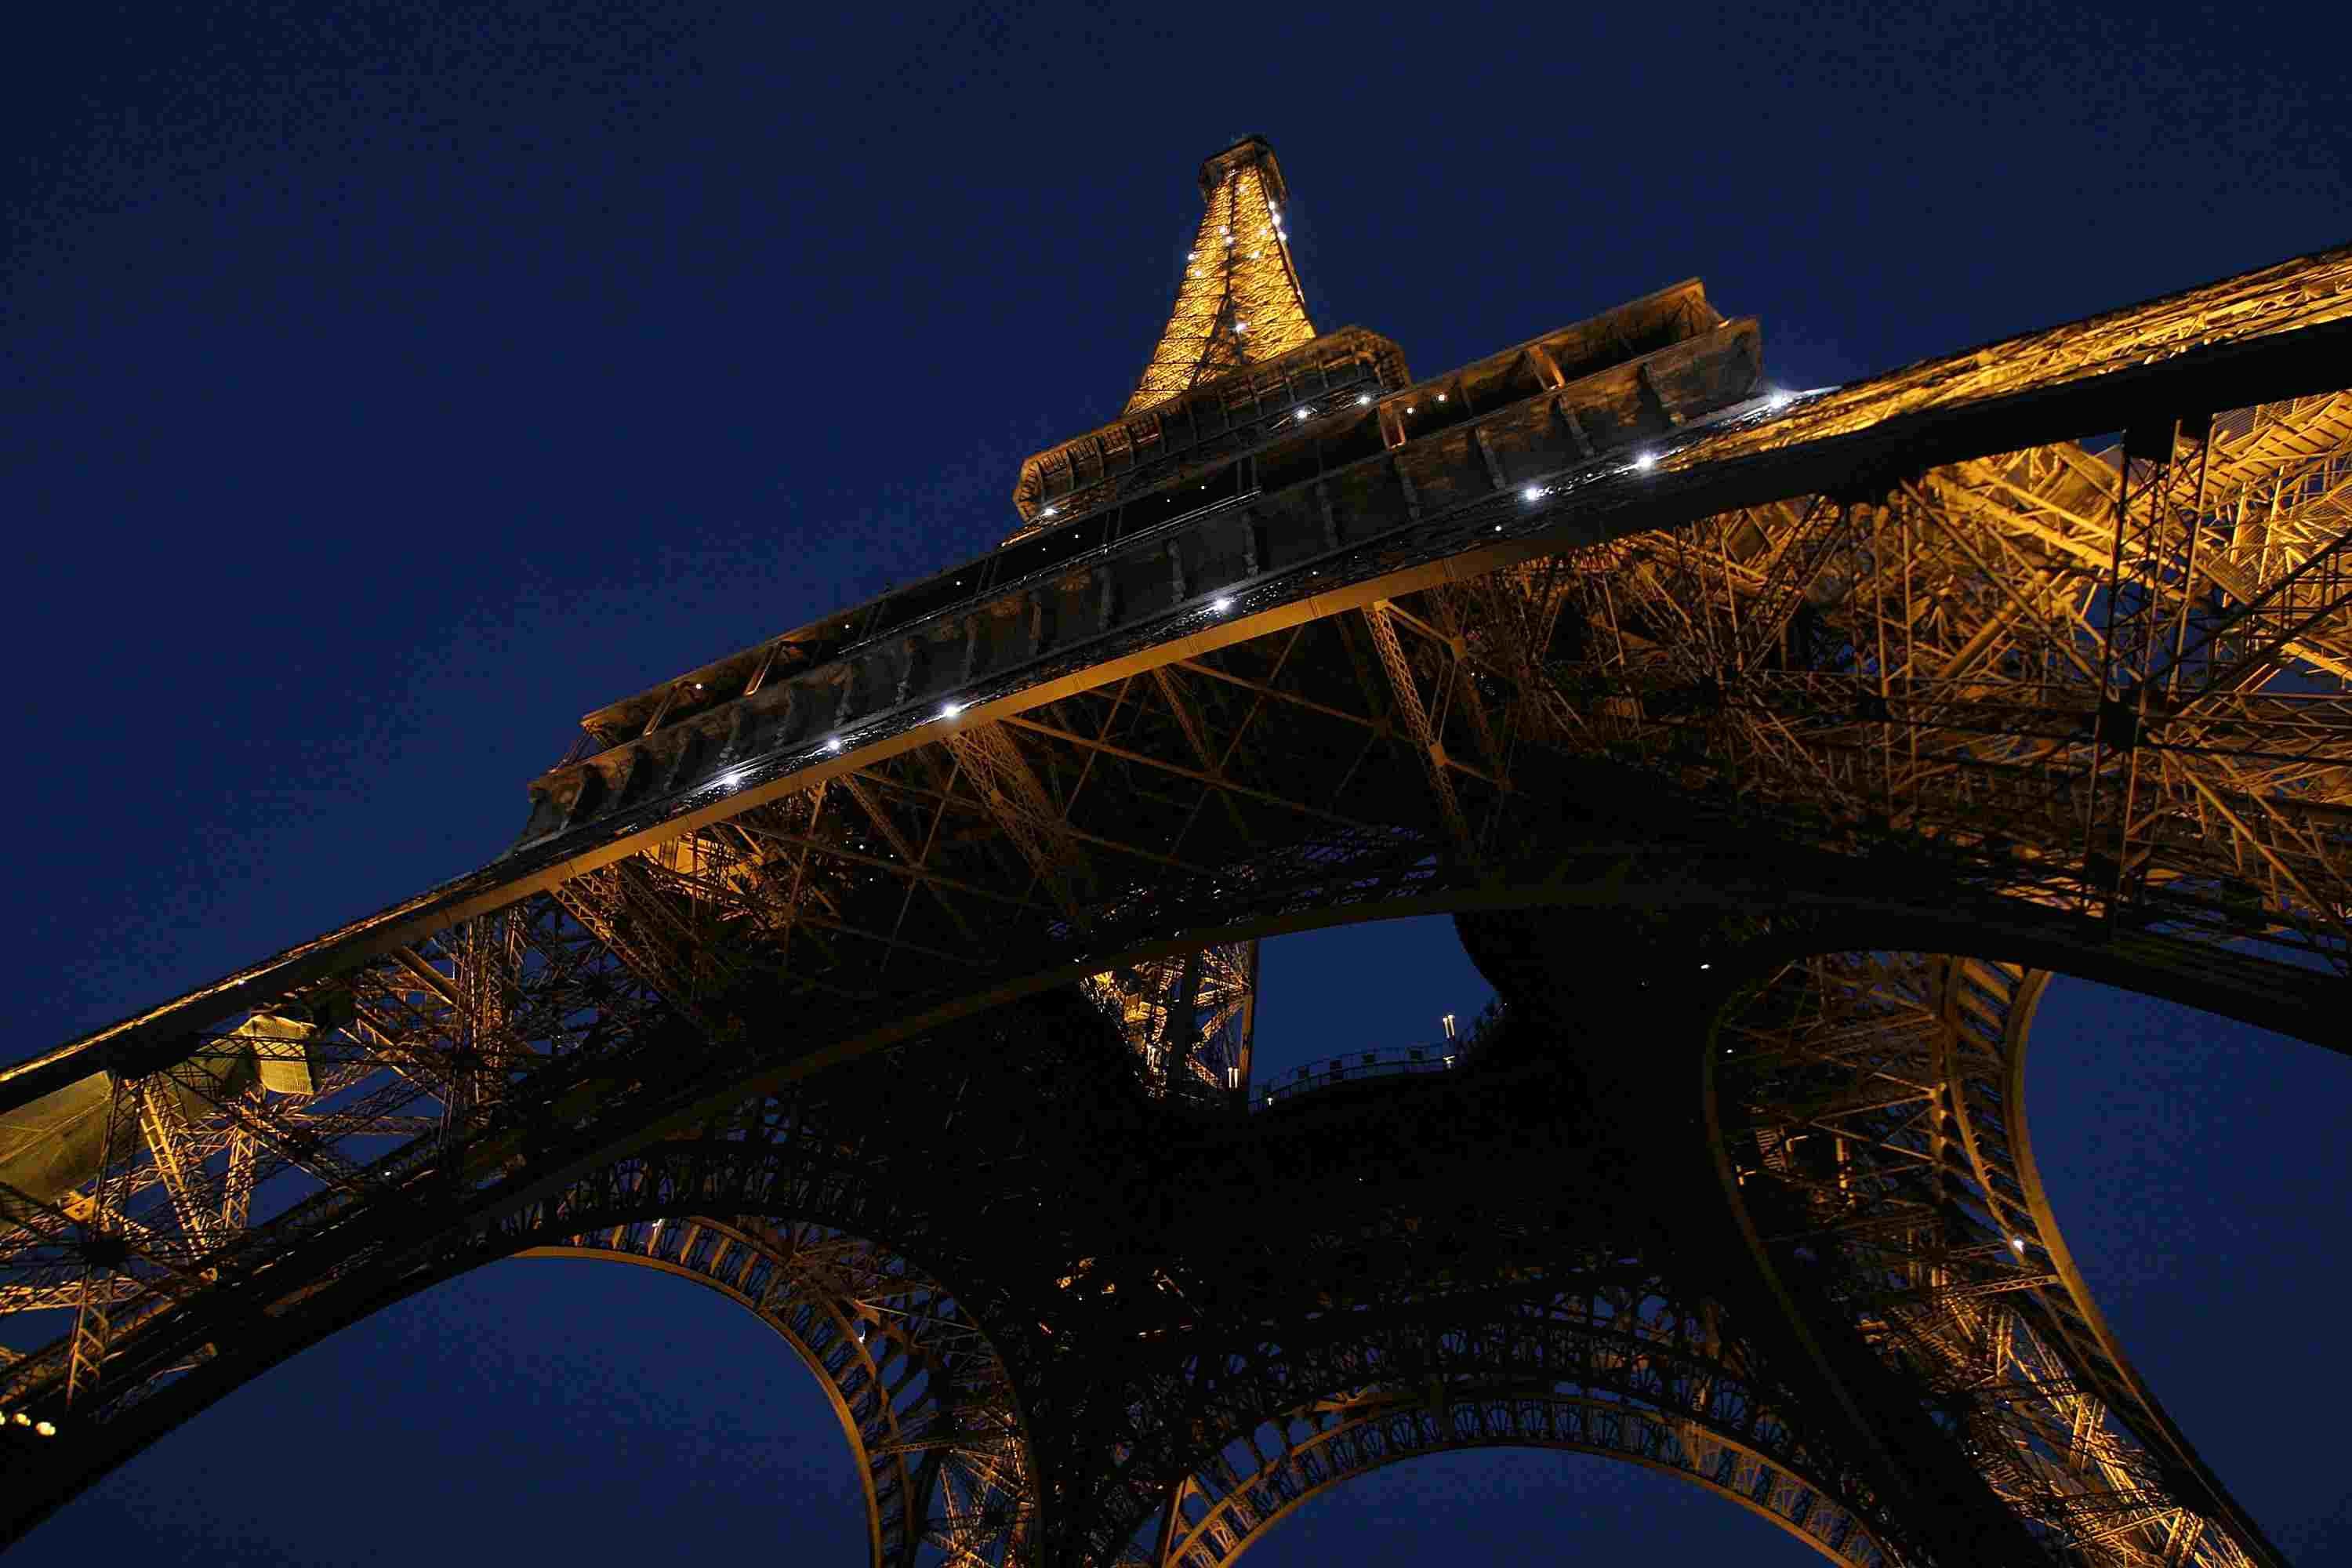 The Eiffel Tower shot from below